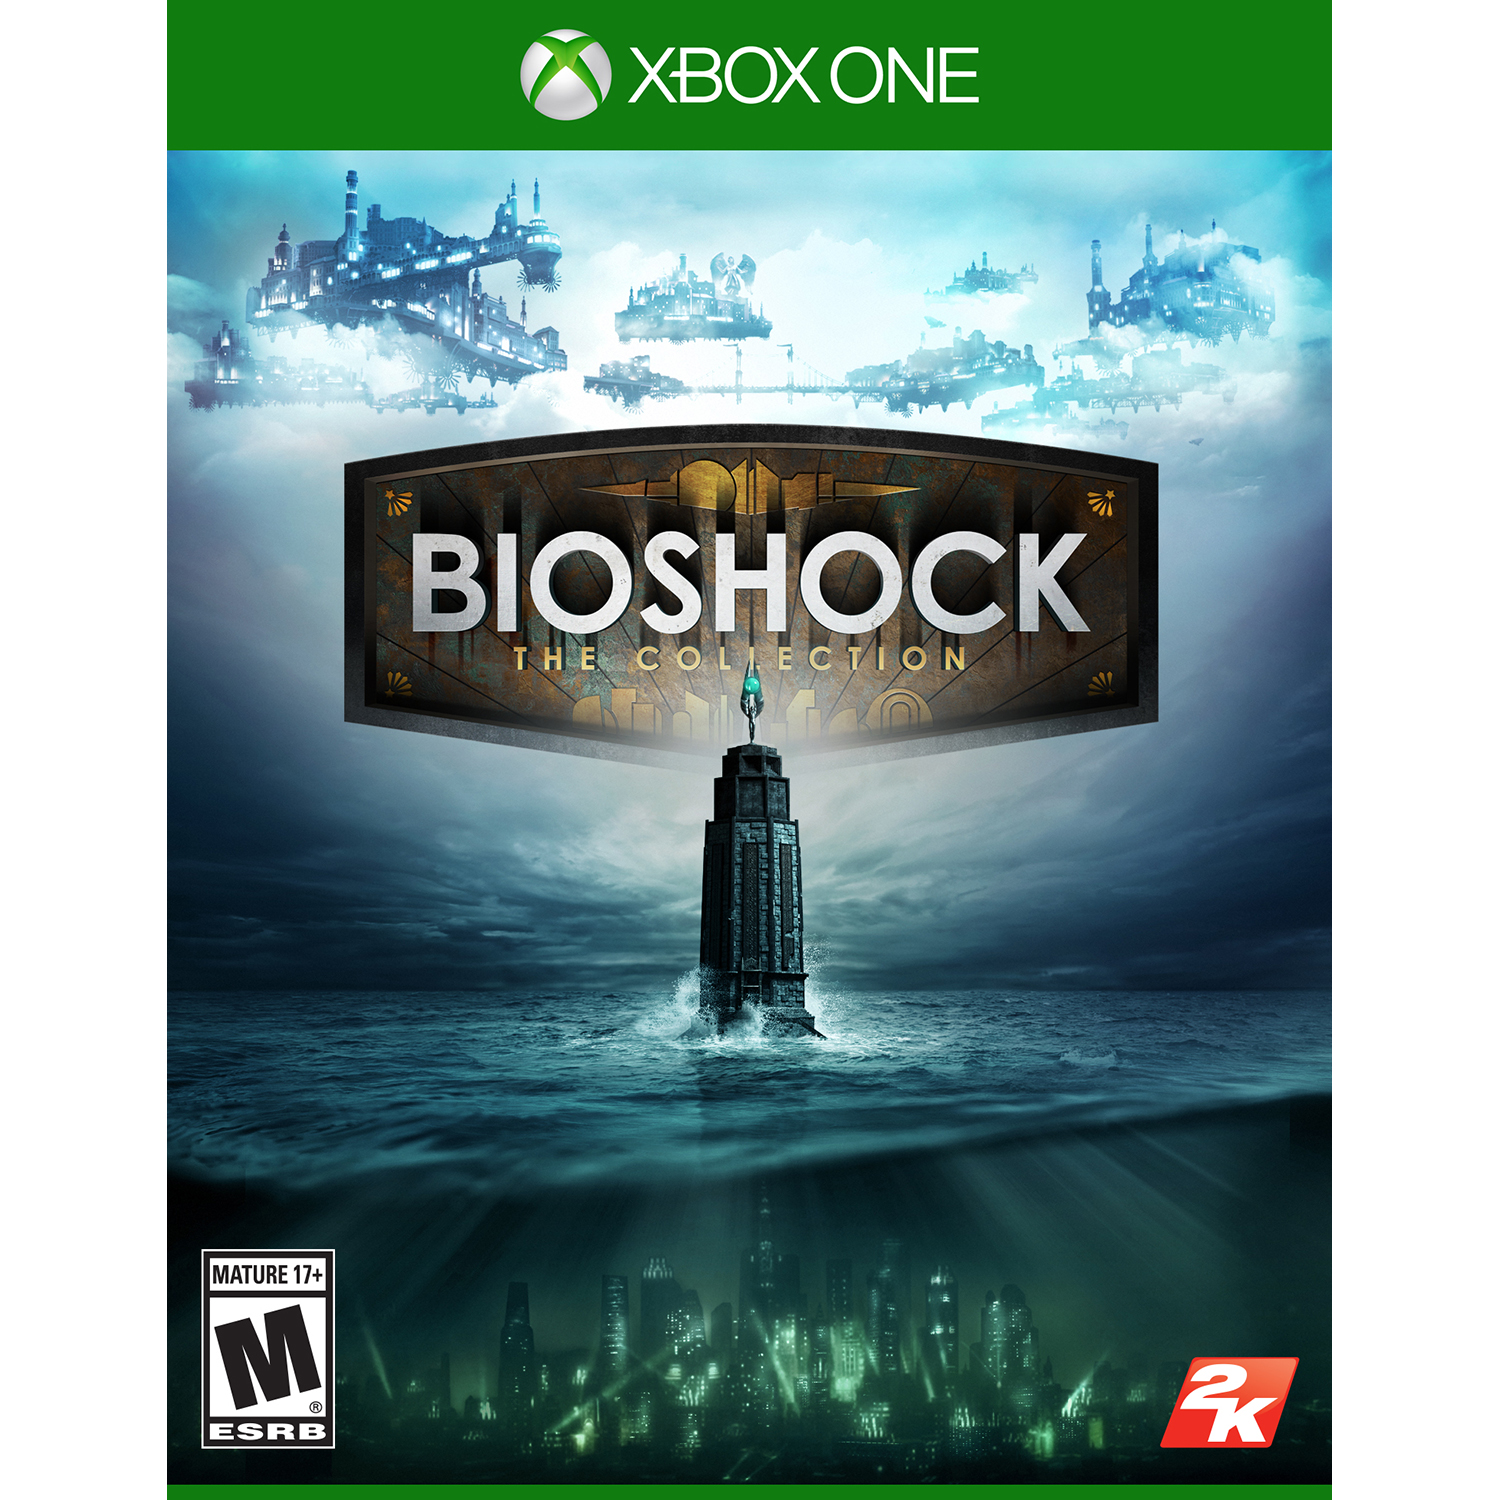 BioShock: The Collection (Used), 2K, Xbox One, 886162559316 by TAKE 2 INTERACTIVE